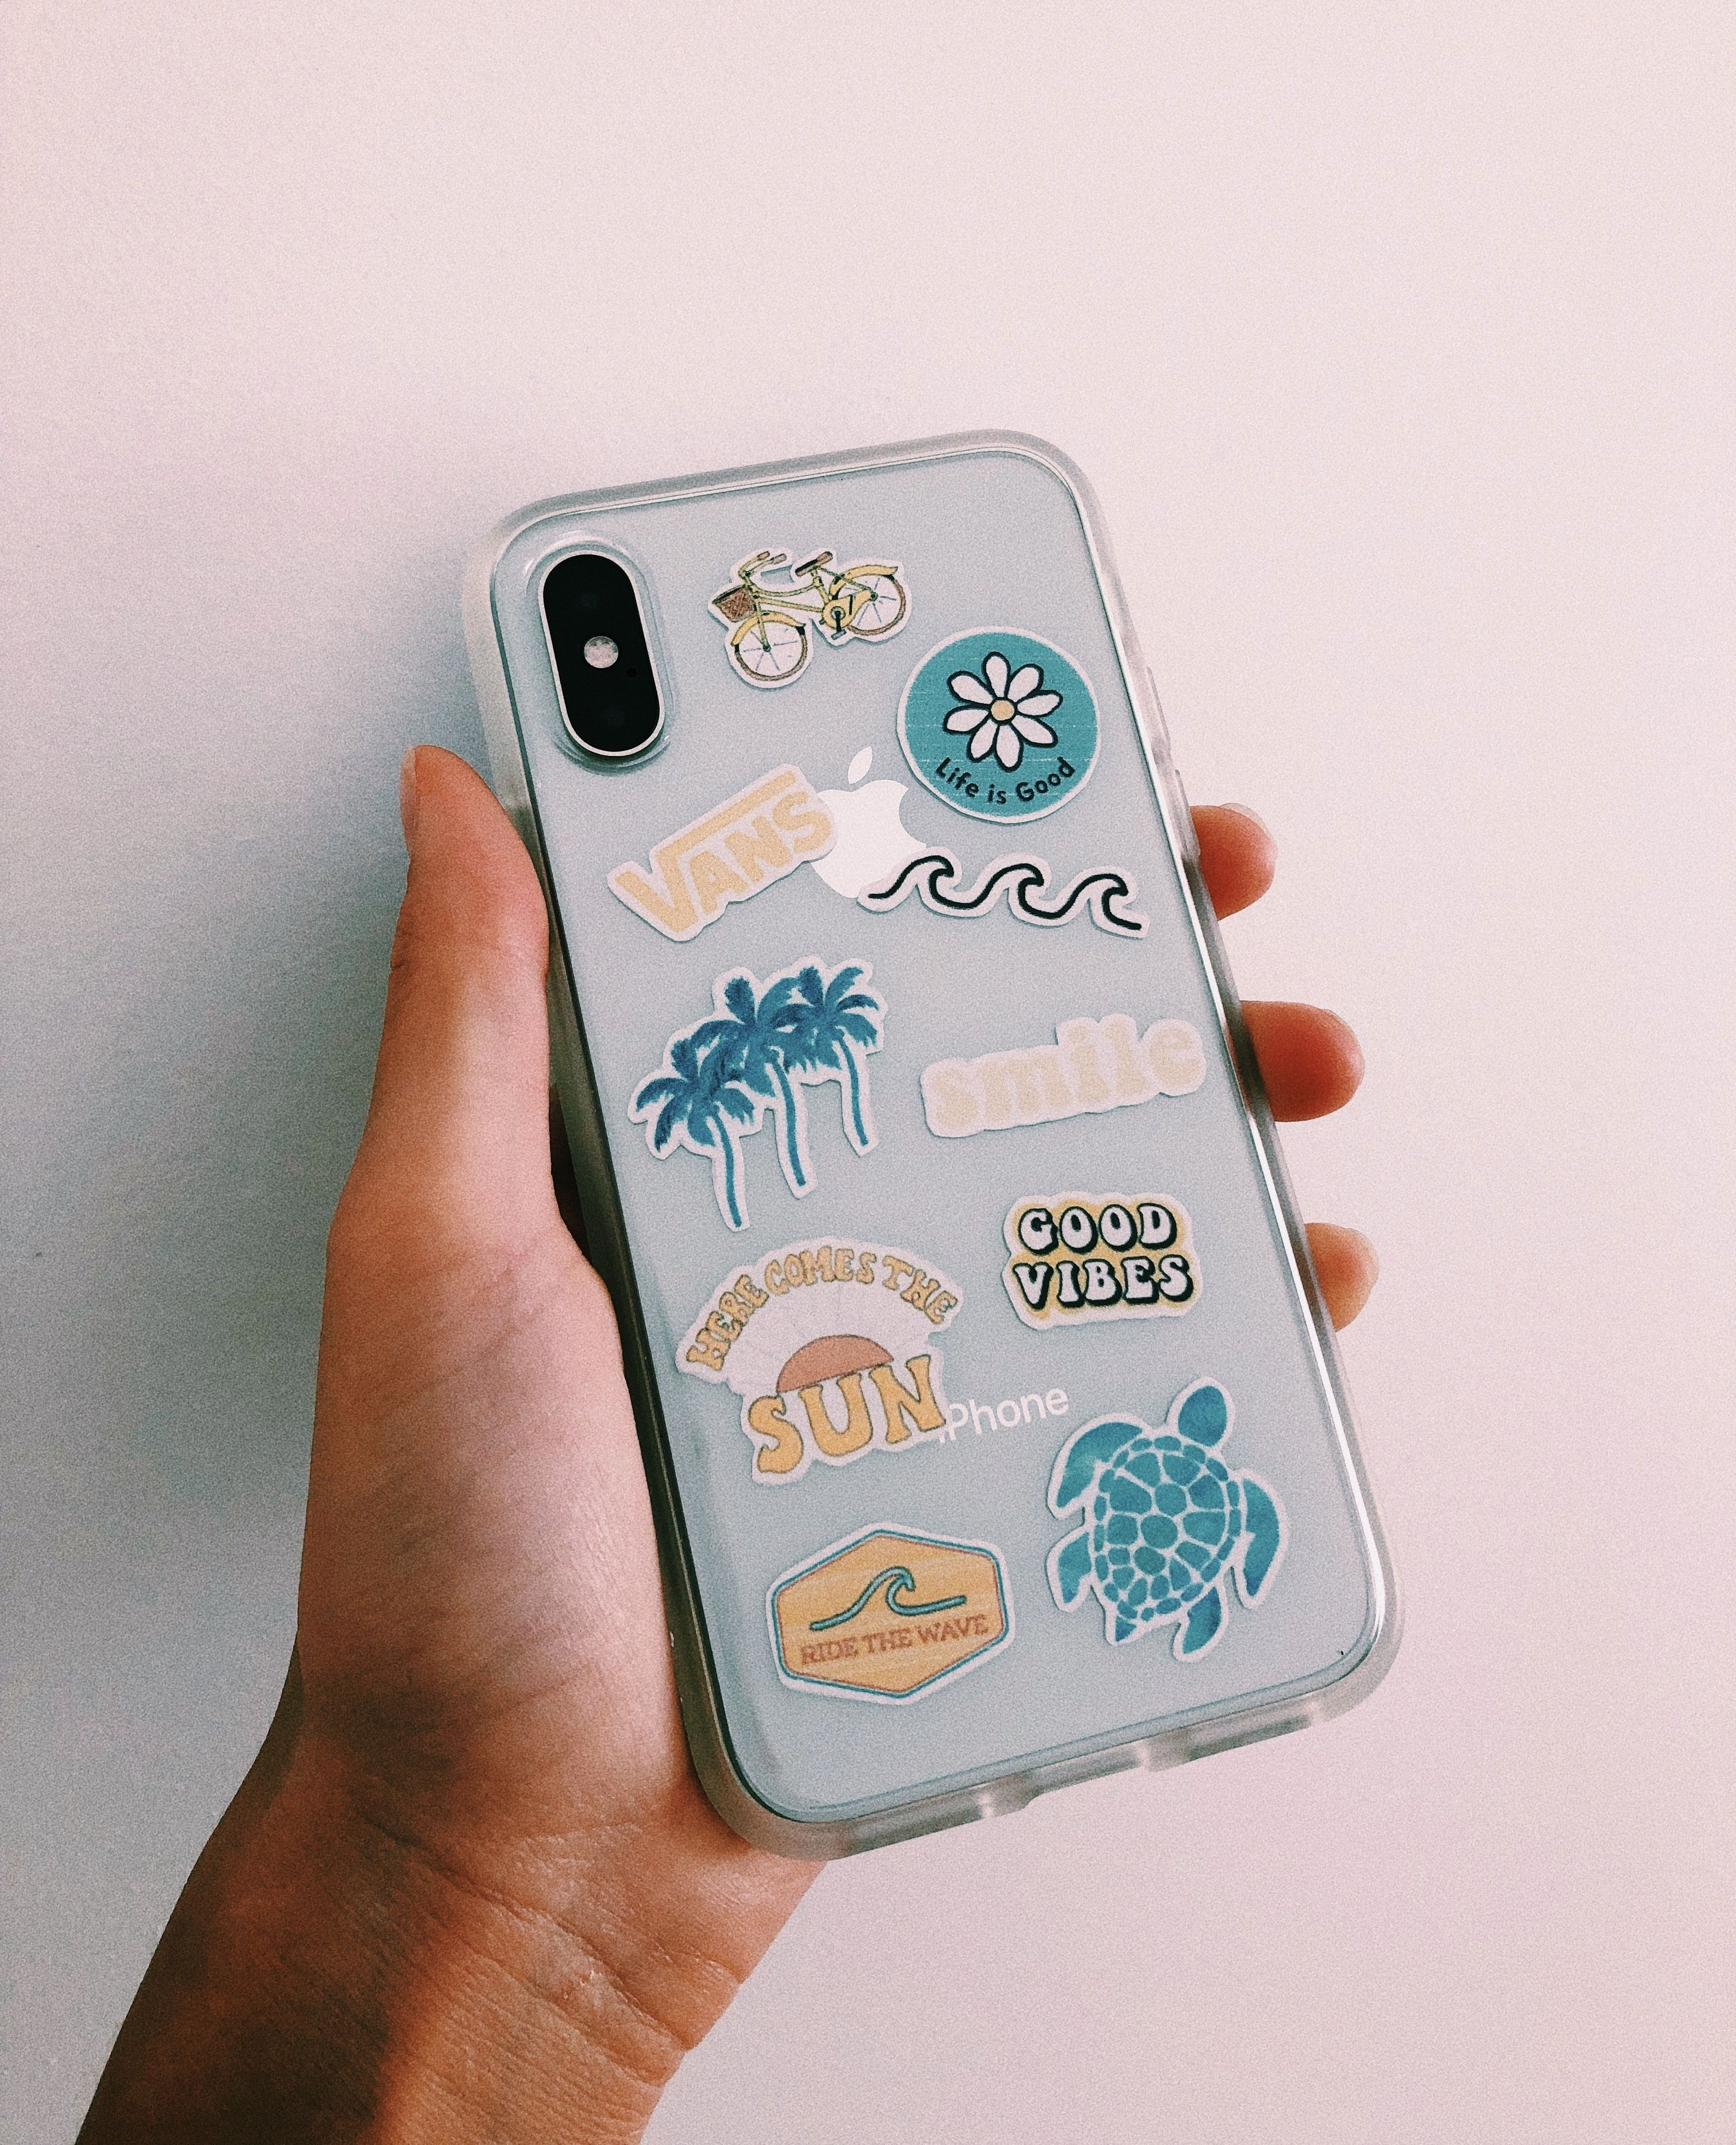 newest collection 9a7c5 79a7d phone case ideas! also if you decide to use this pin please credit ...